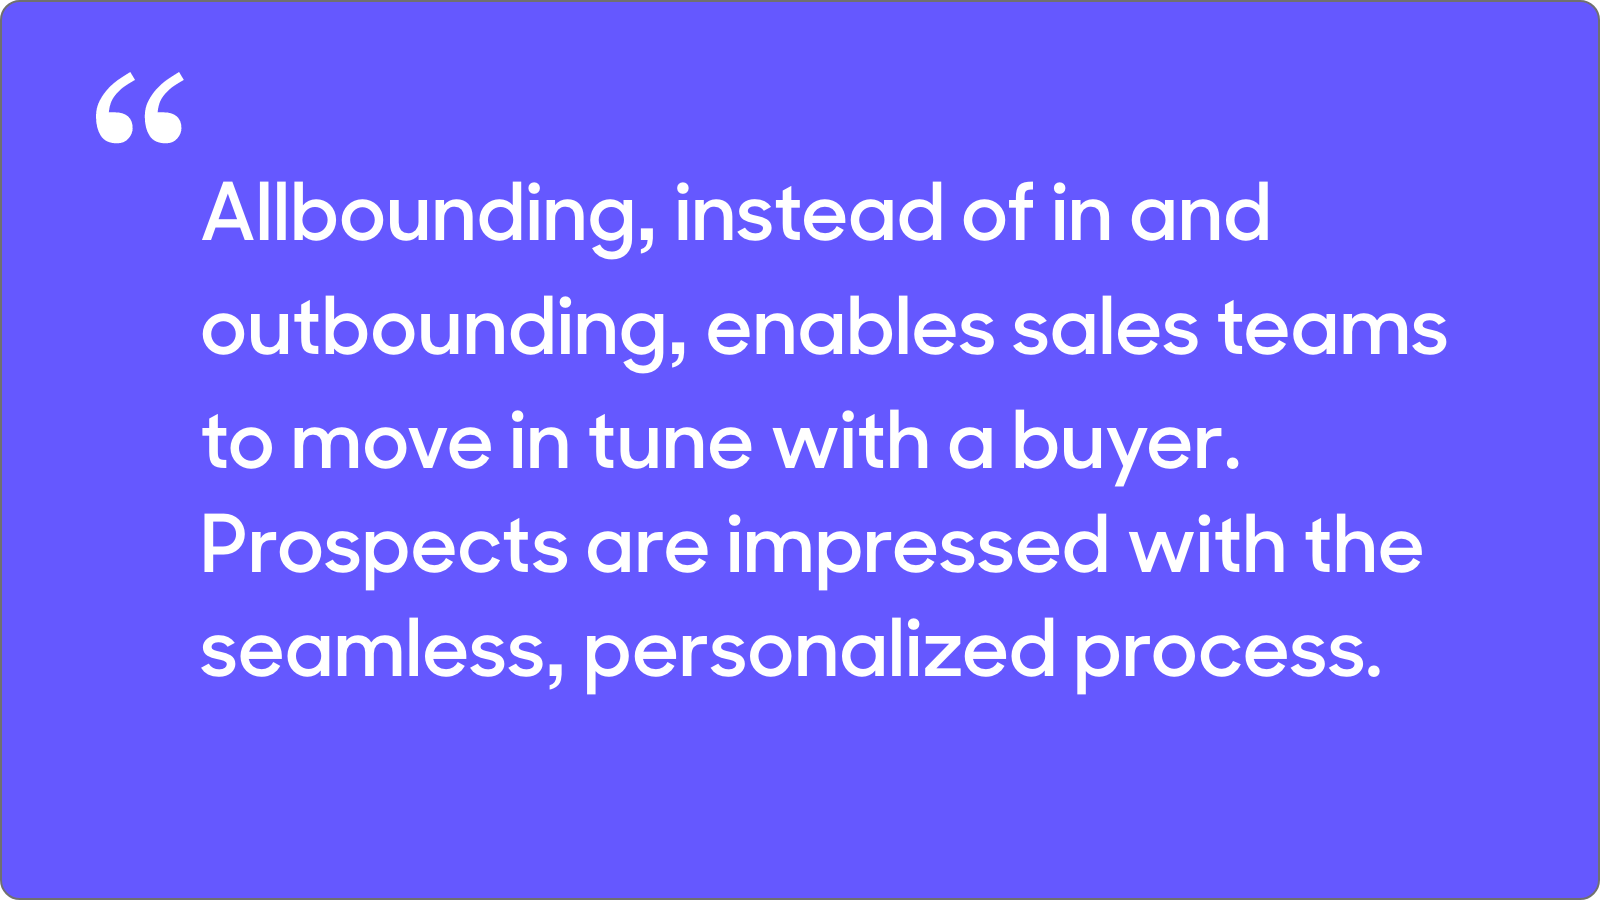 allbounding gives a seamless, personalized experience for prospects